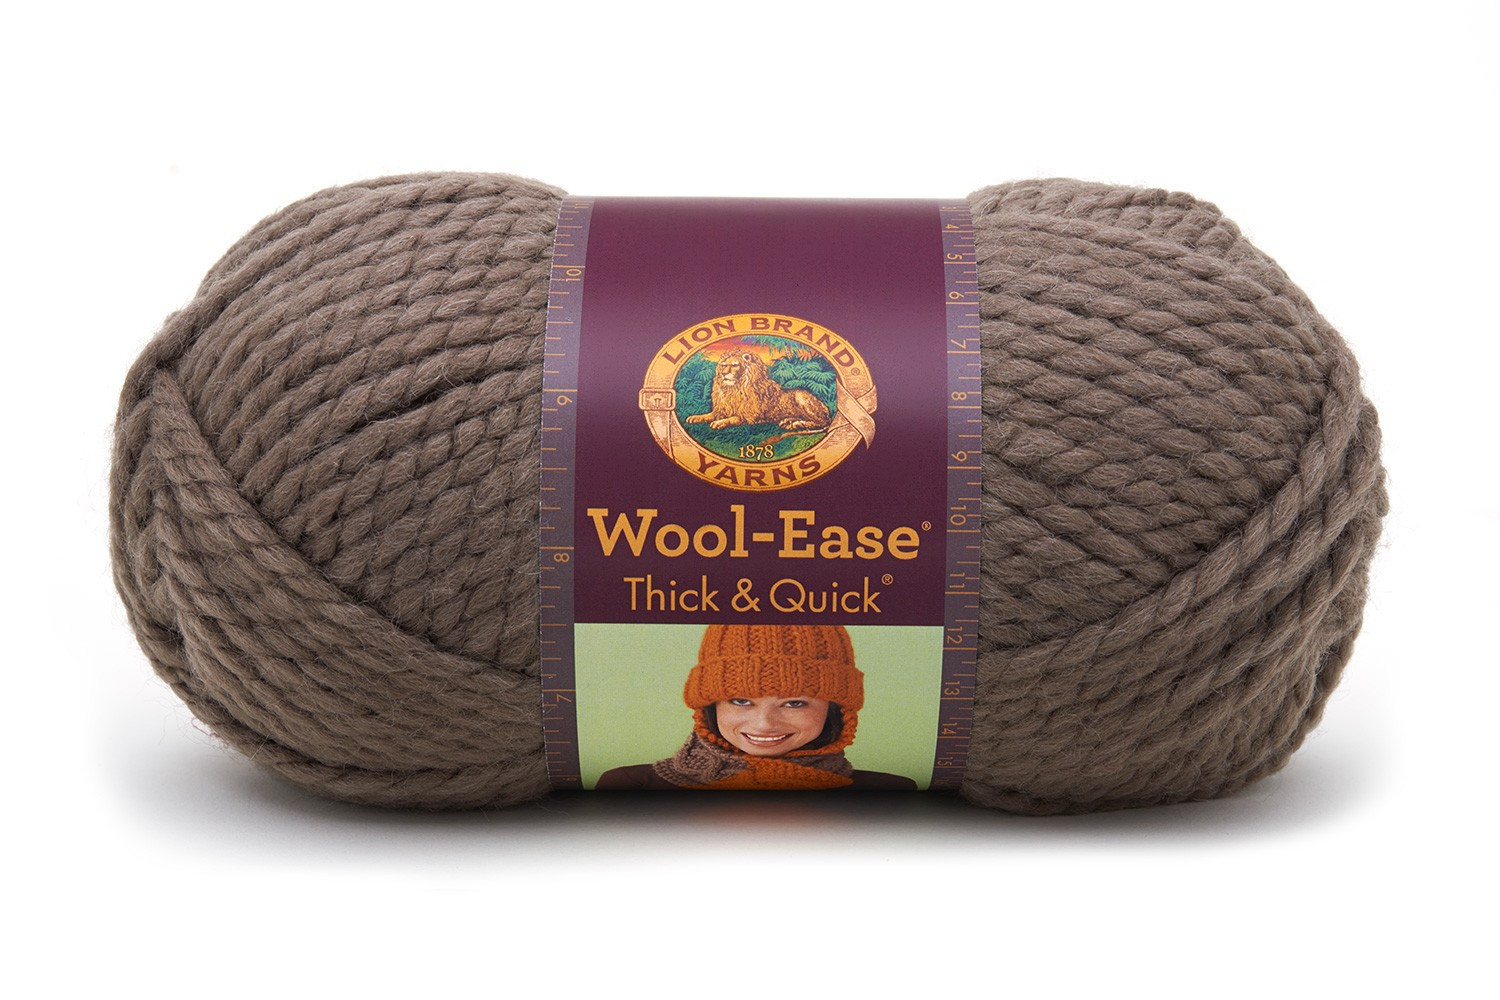 Wool Ease Thick and Quick Yarn Inspirational Wool Ease Thick & Quick Taupe Wool Ease Thick & Quick Of Charming 46 Pictures Wool Ease Thick and Quick Yarn